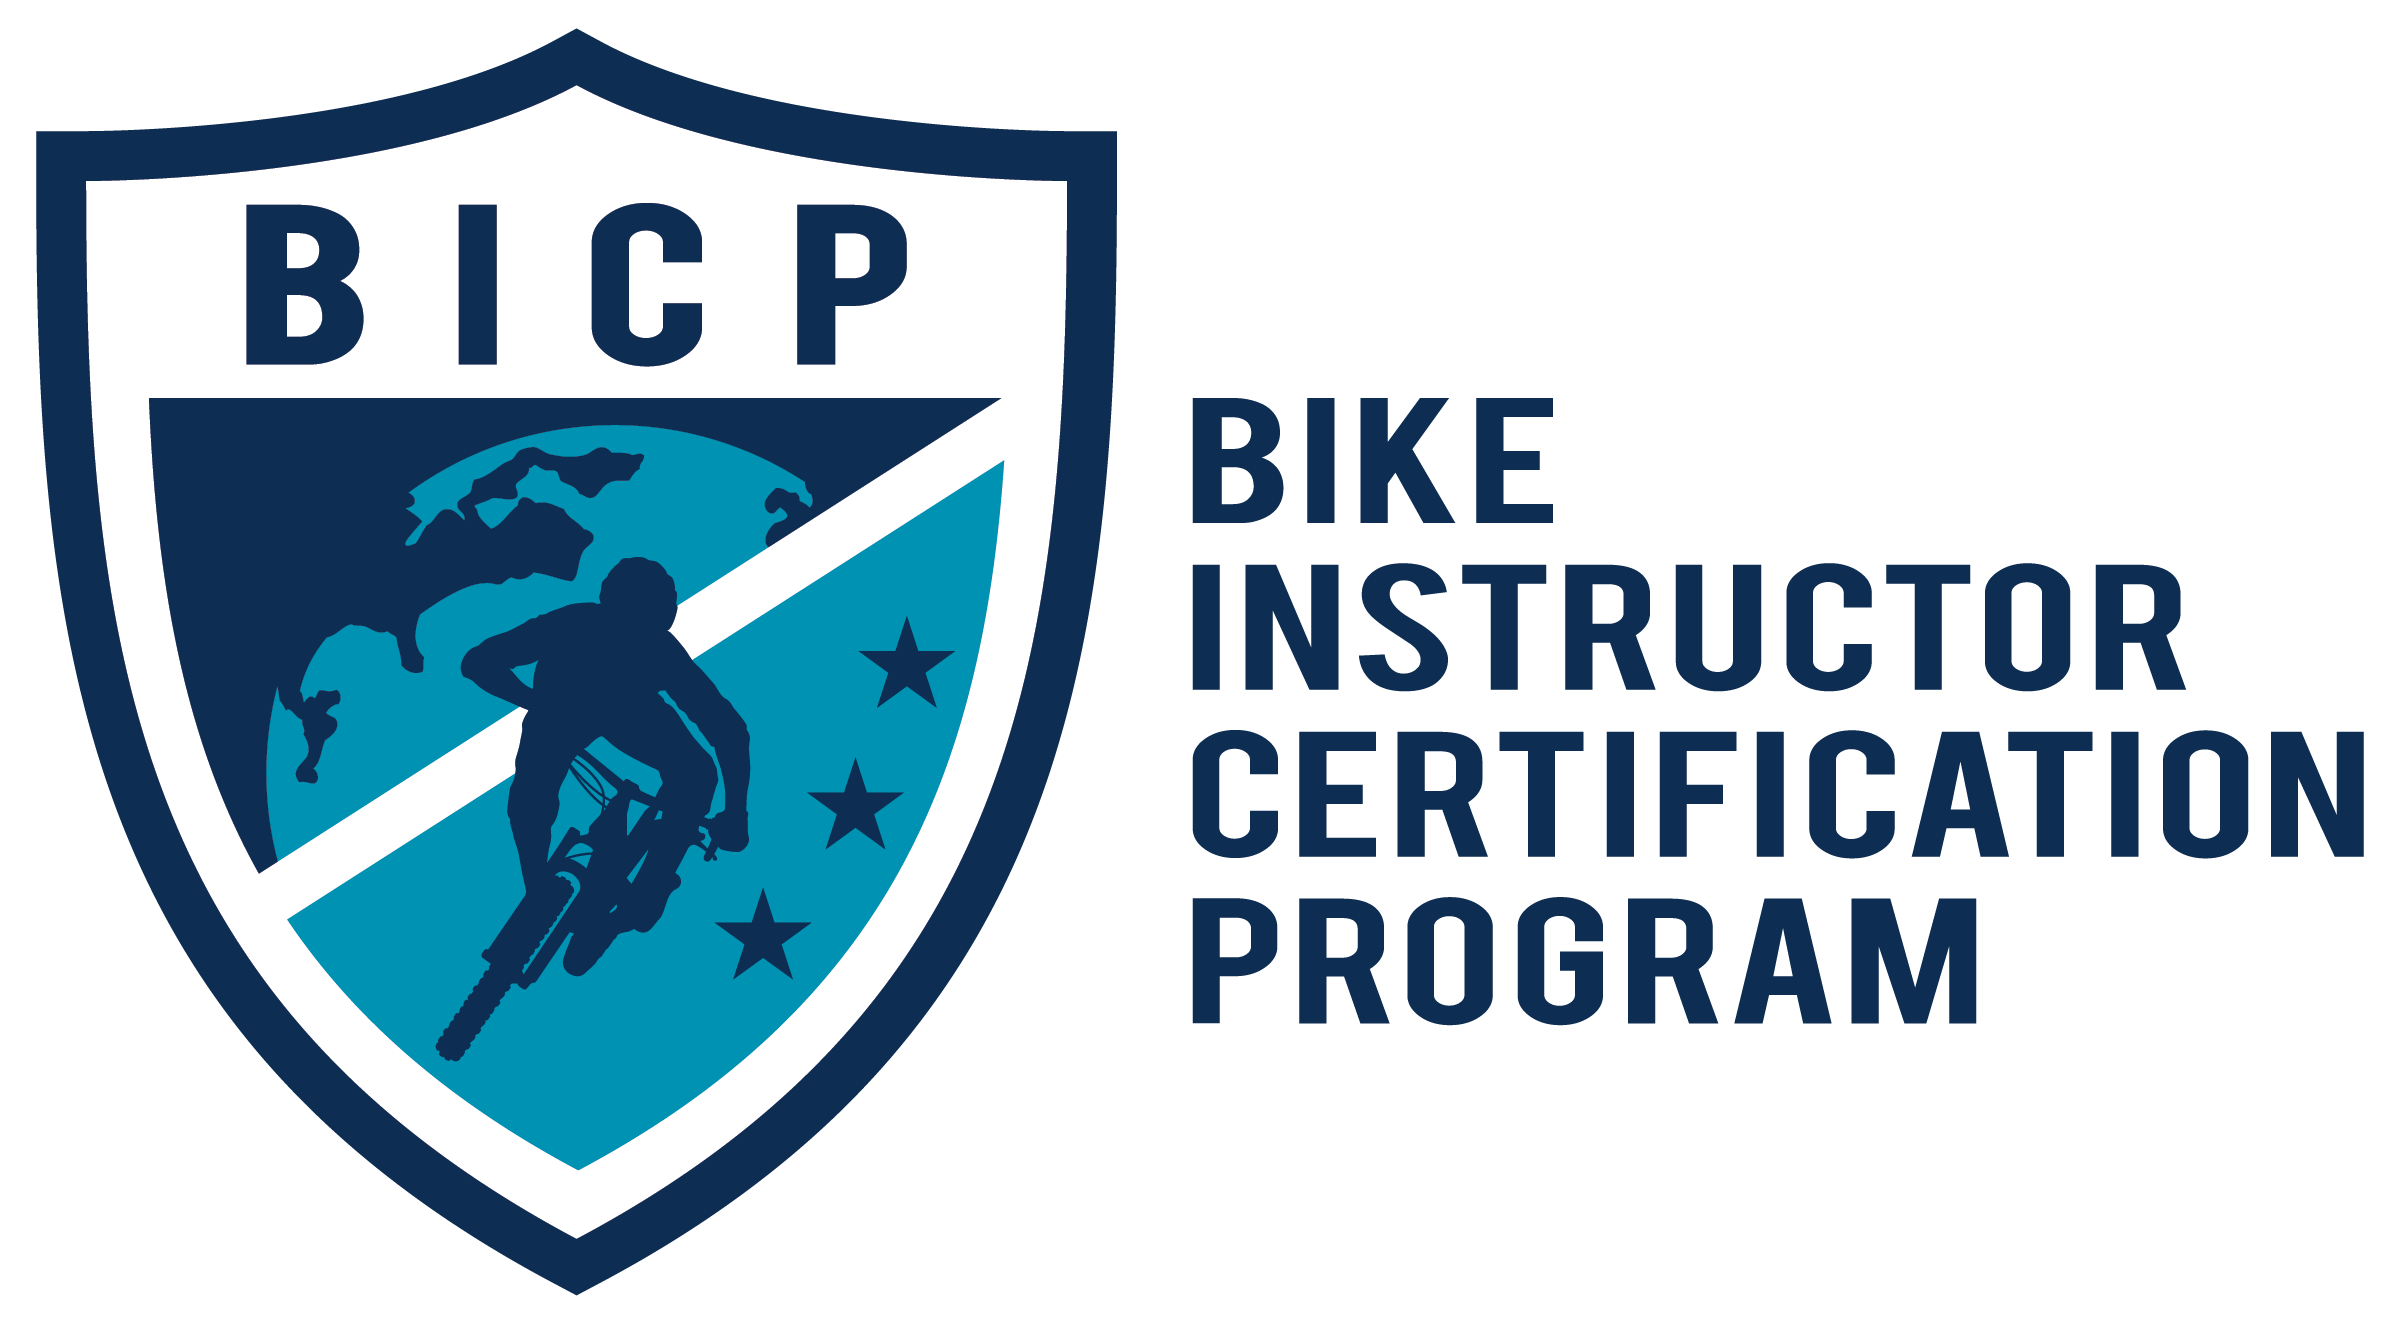 Bike Instructor Certification Program